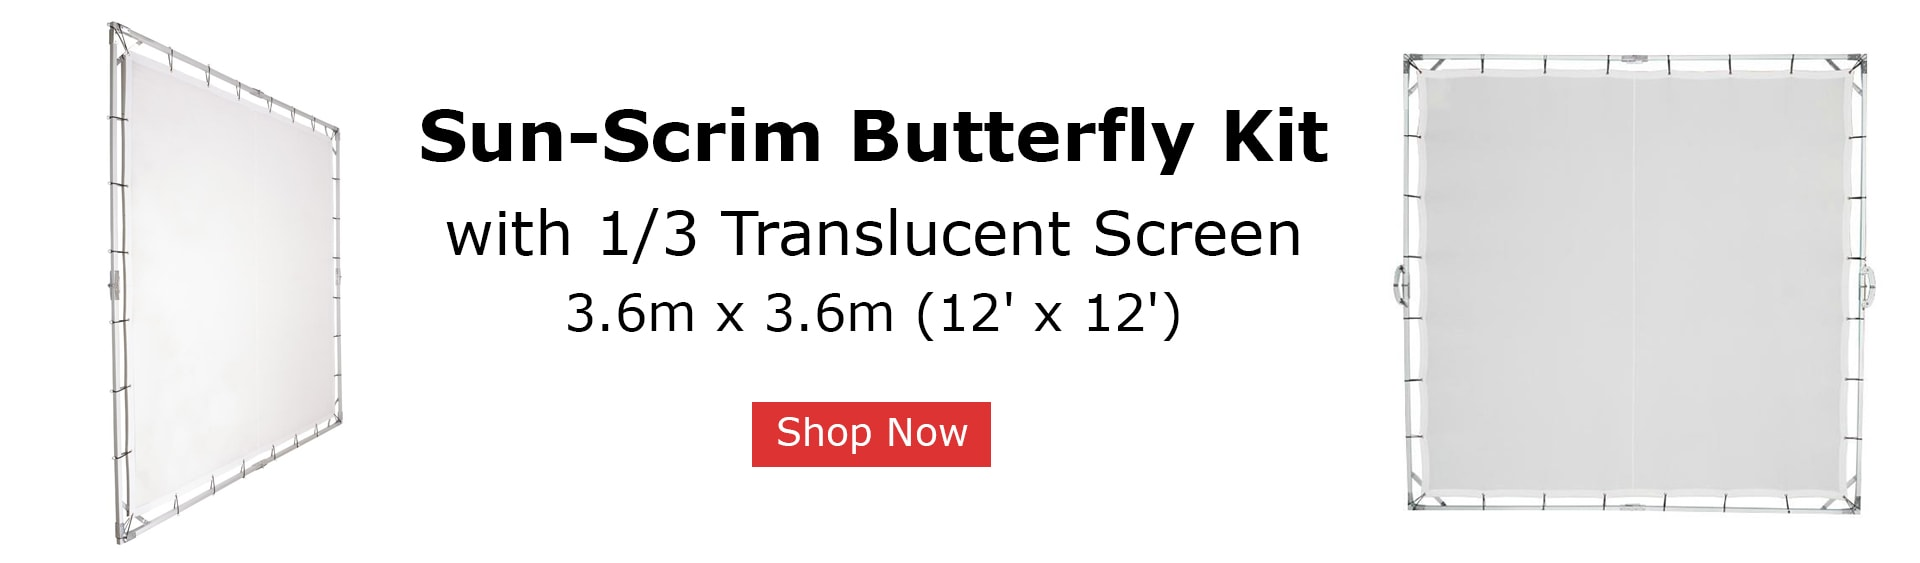 Sun Scrim Butterfly Kit Slide